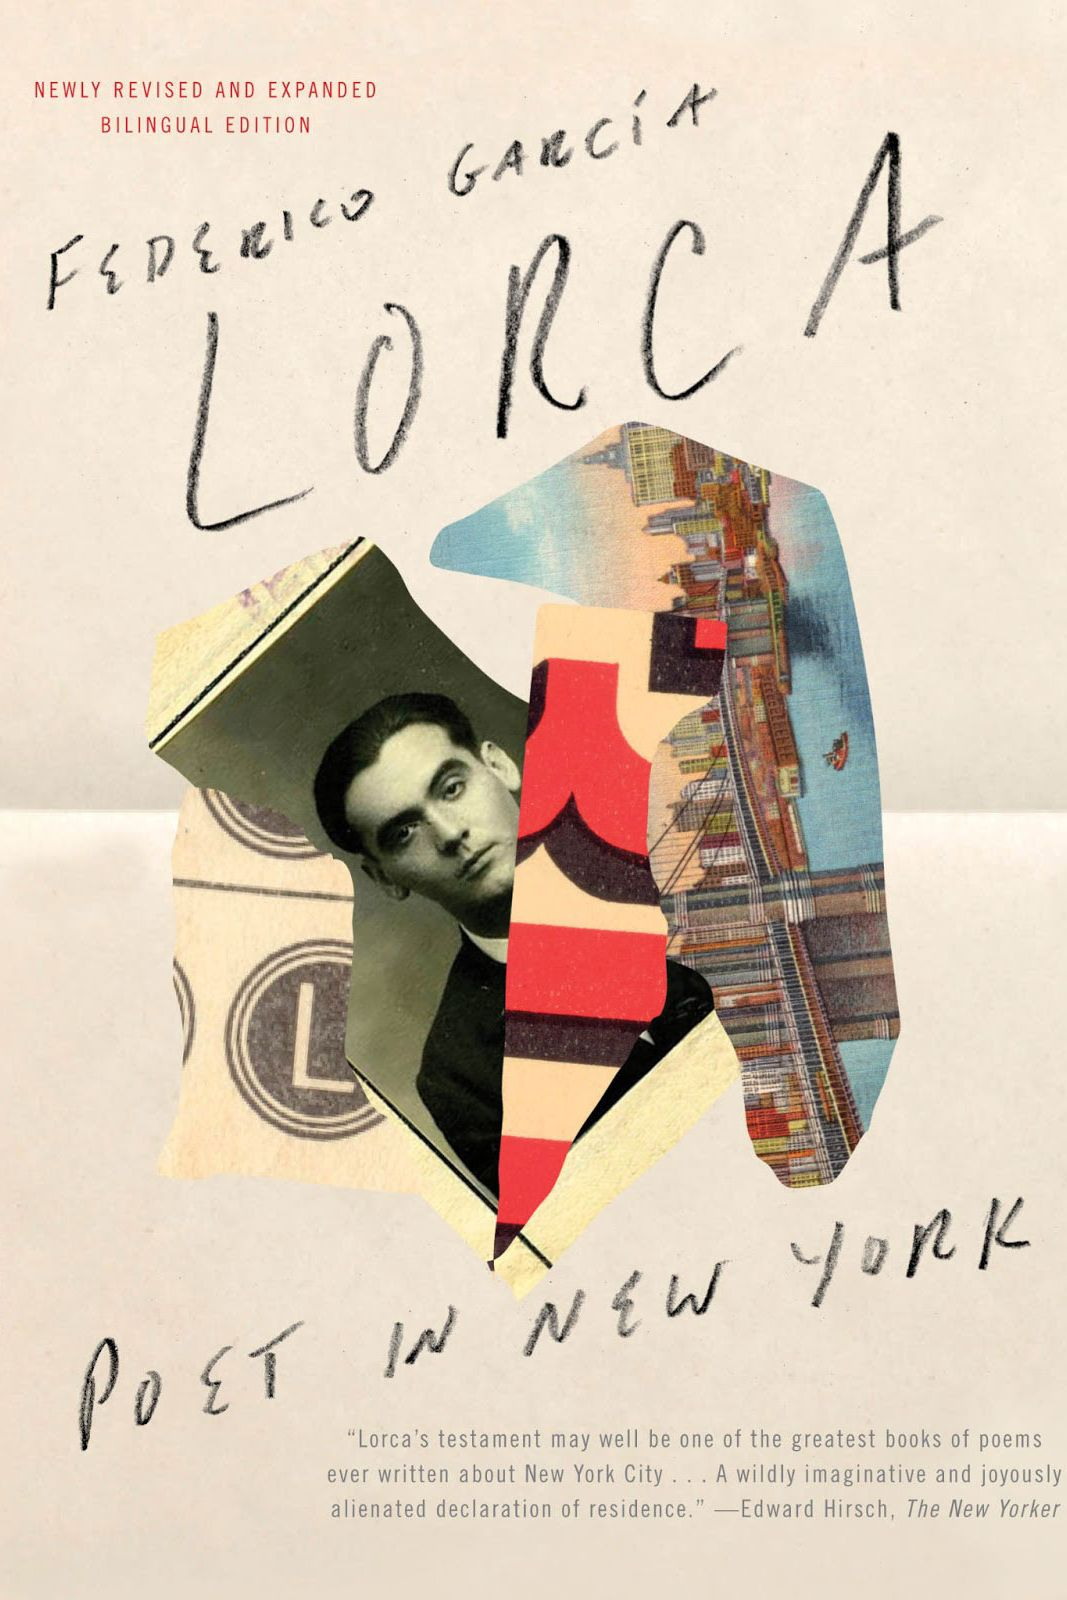 <em>Poet in New York</em> by Federico García Lorca